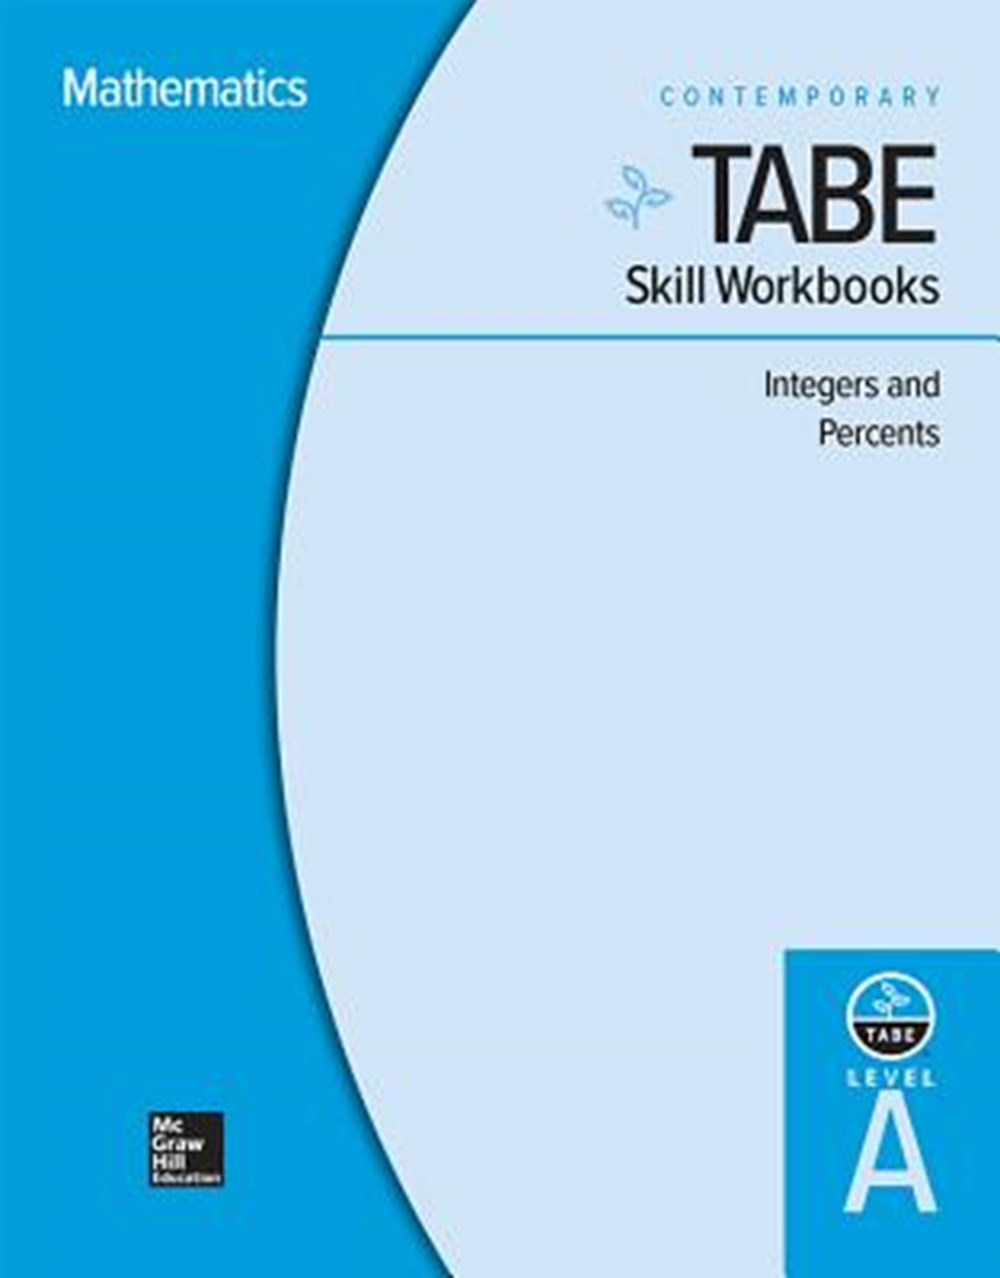 Tabe Skill Workbooks Level A Integers and Percents - 10 Pack